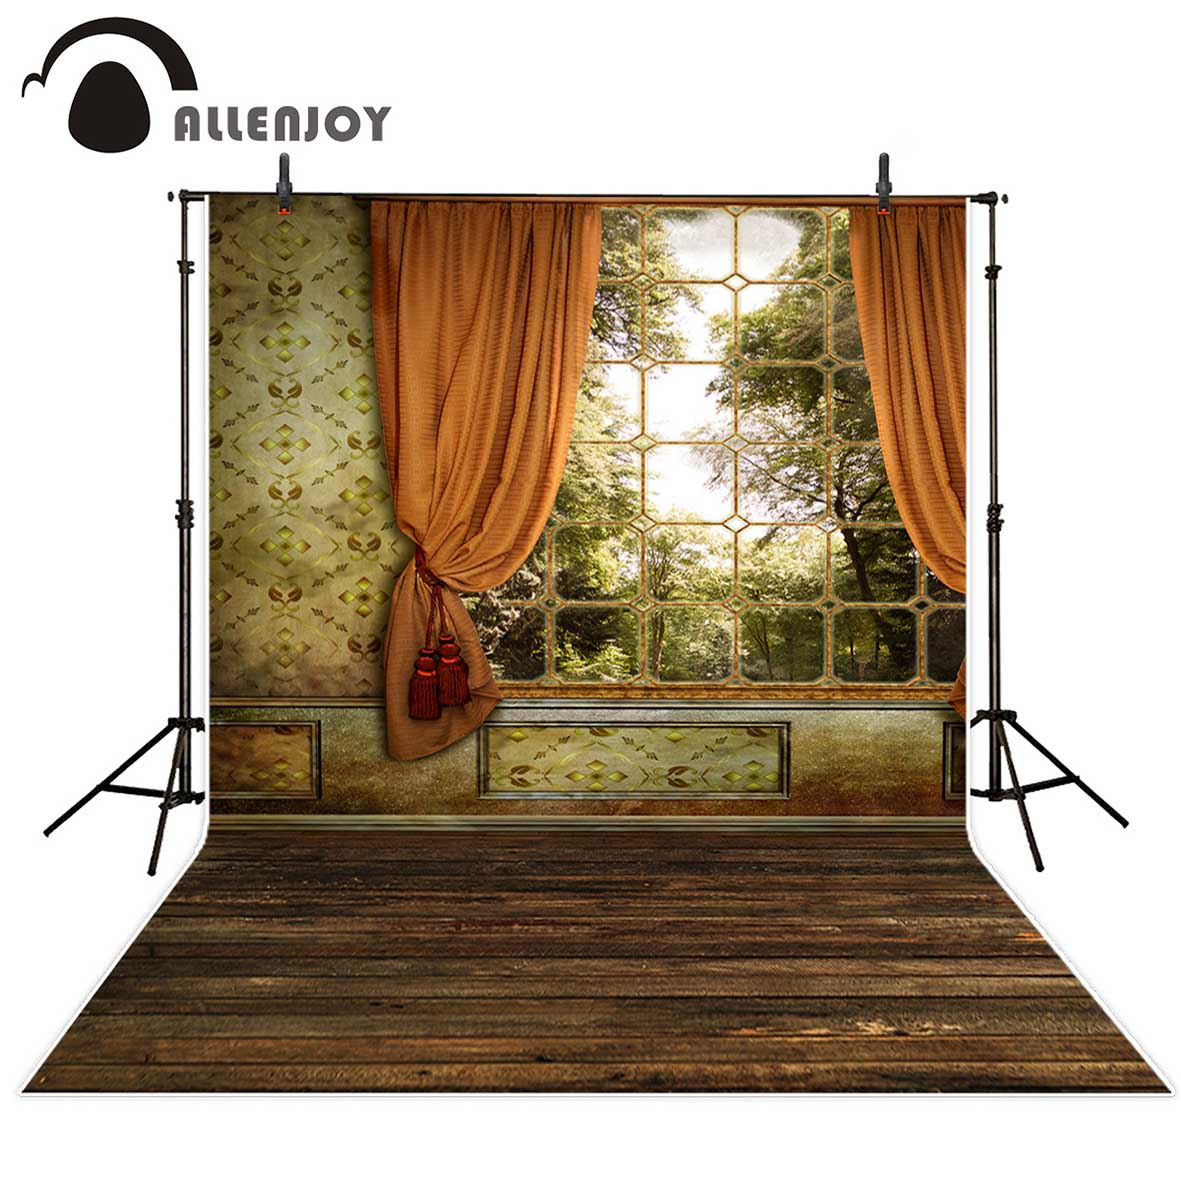 Allenjoy photography backdrops beautiful window Curtain Palace Wooden floor vinyl photography backdrops studio background vinyl allenjoy photography backdrops floor mosaic school blackboard kids vinyl photocall photographic studio computer printing lovely